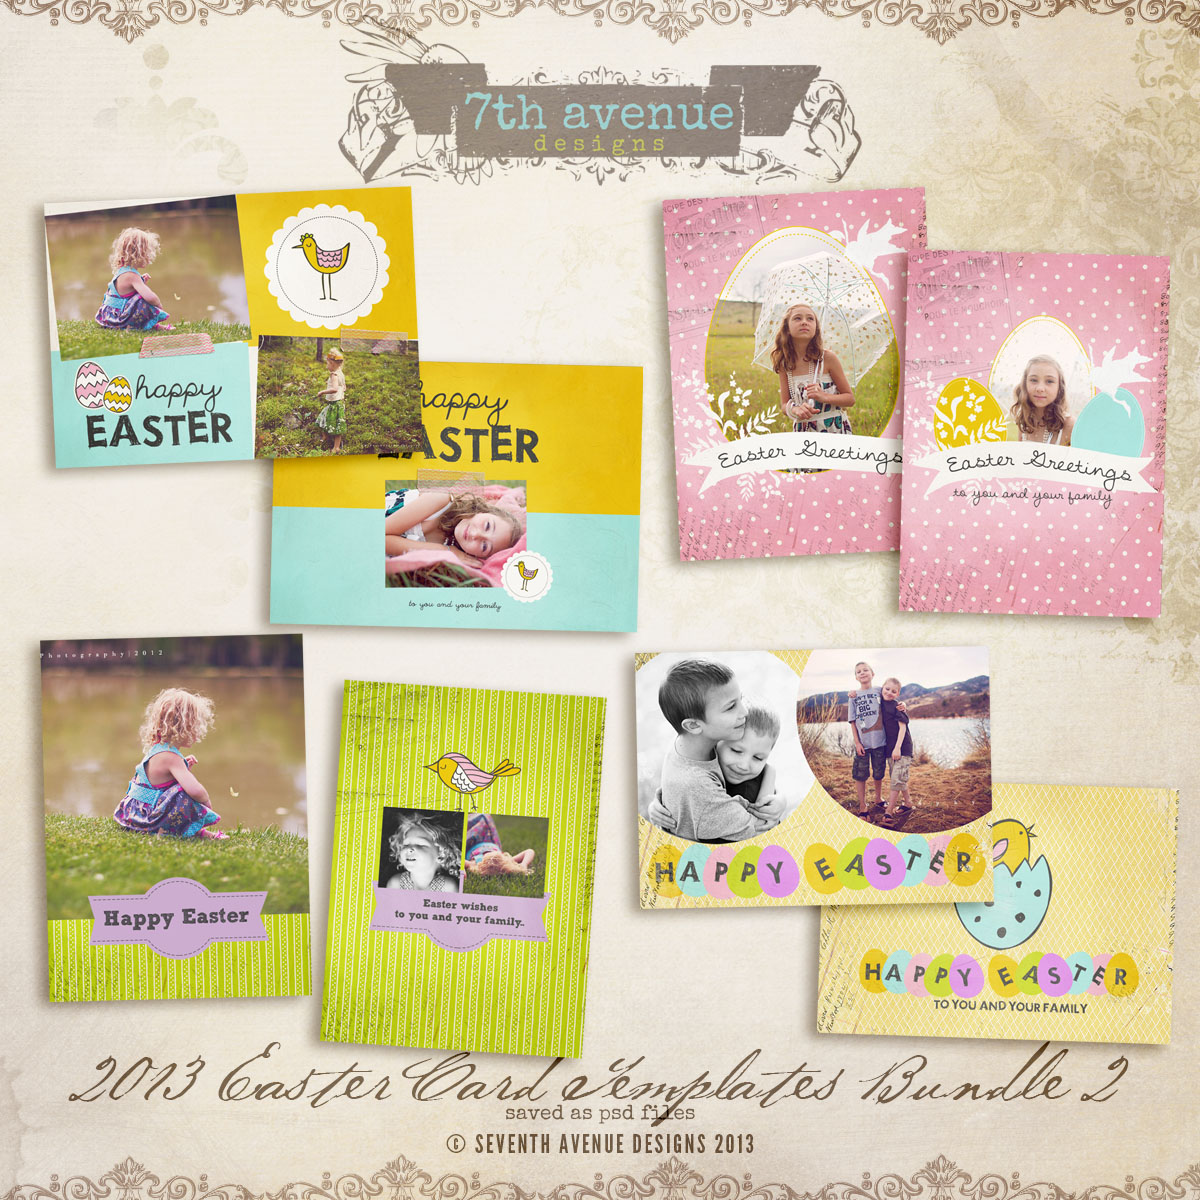 2013 Easter Card bundle 2